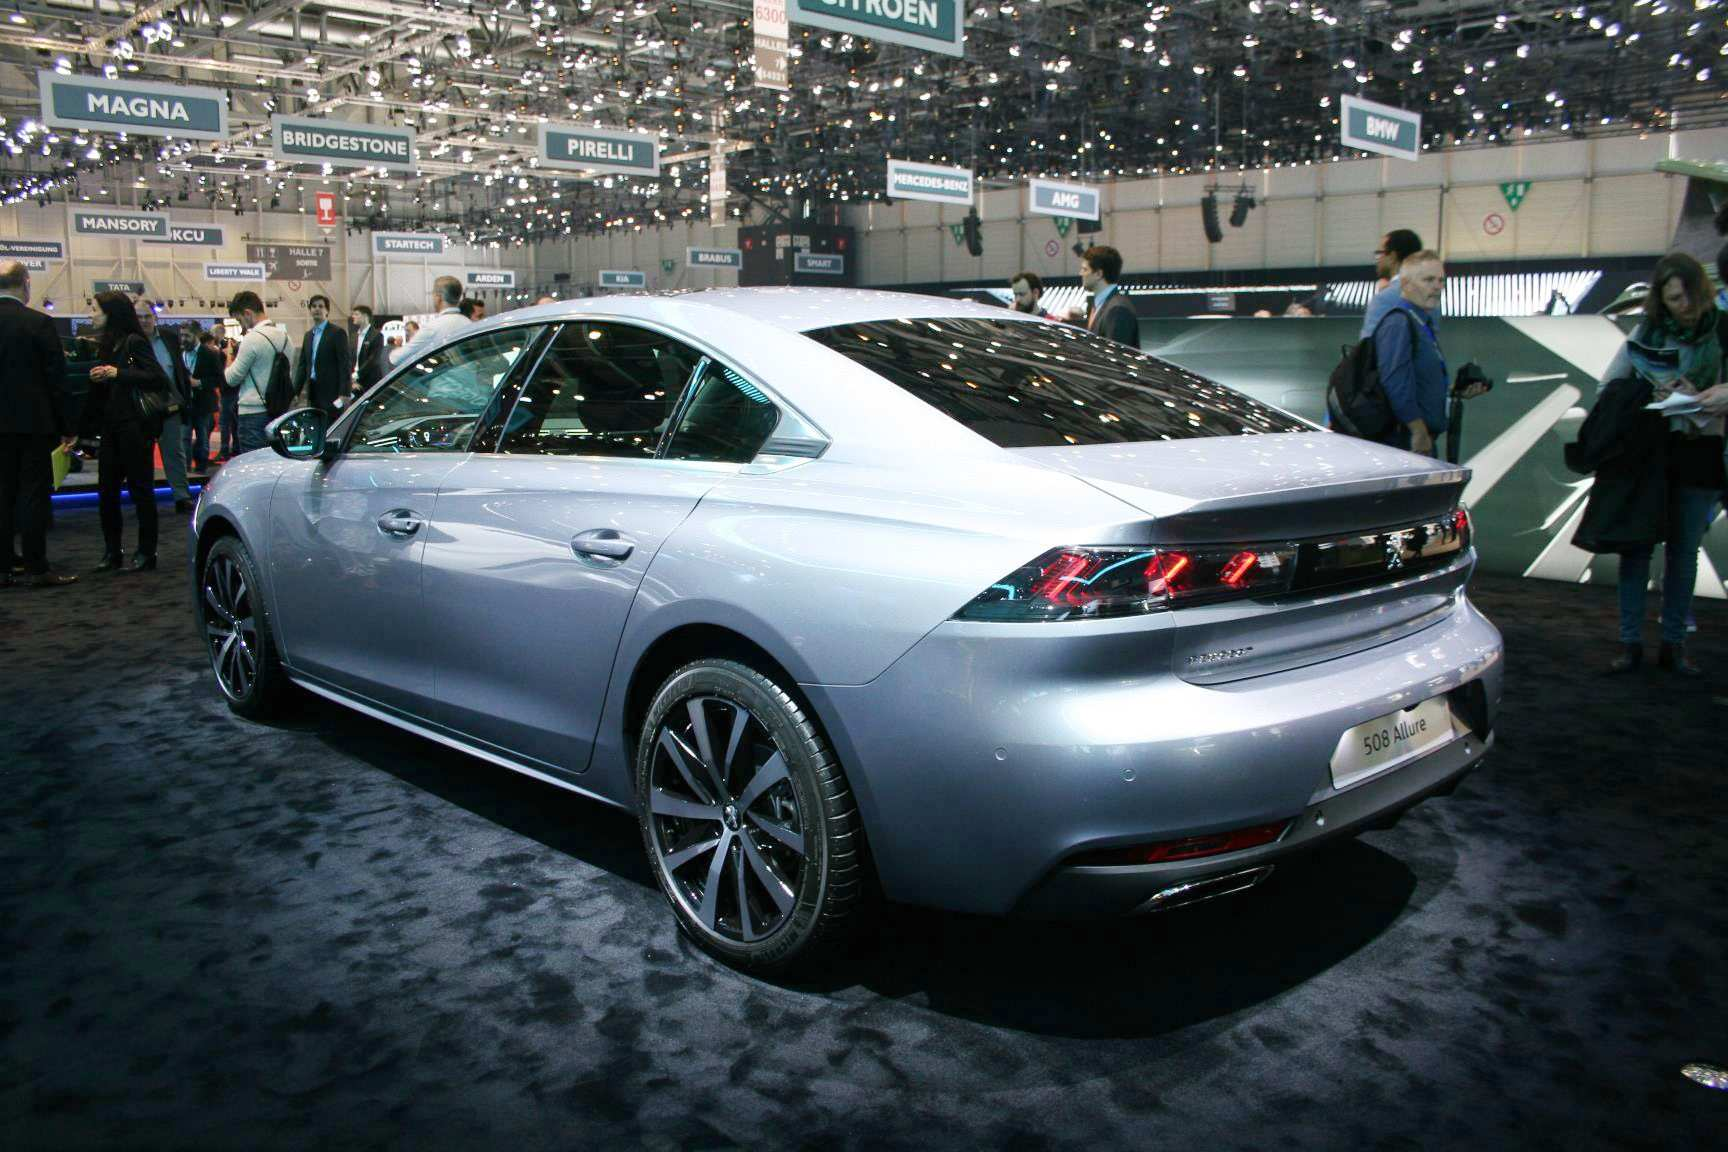 76 New Motori 2020 Peugeot Specs And Review